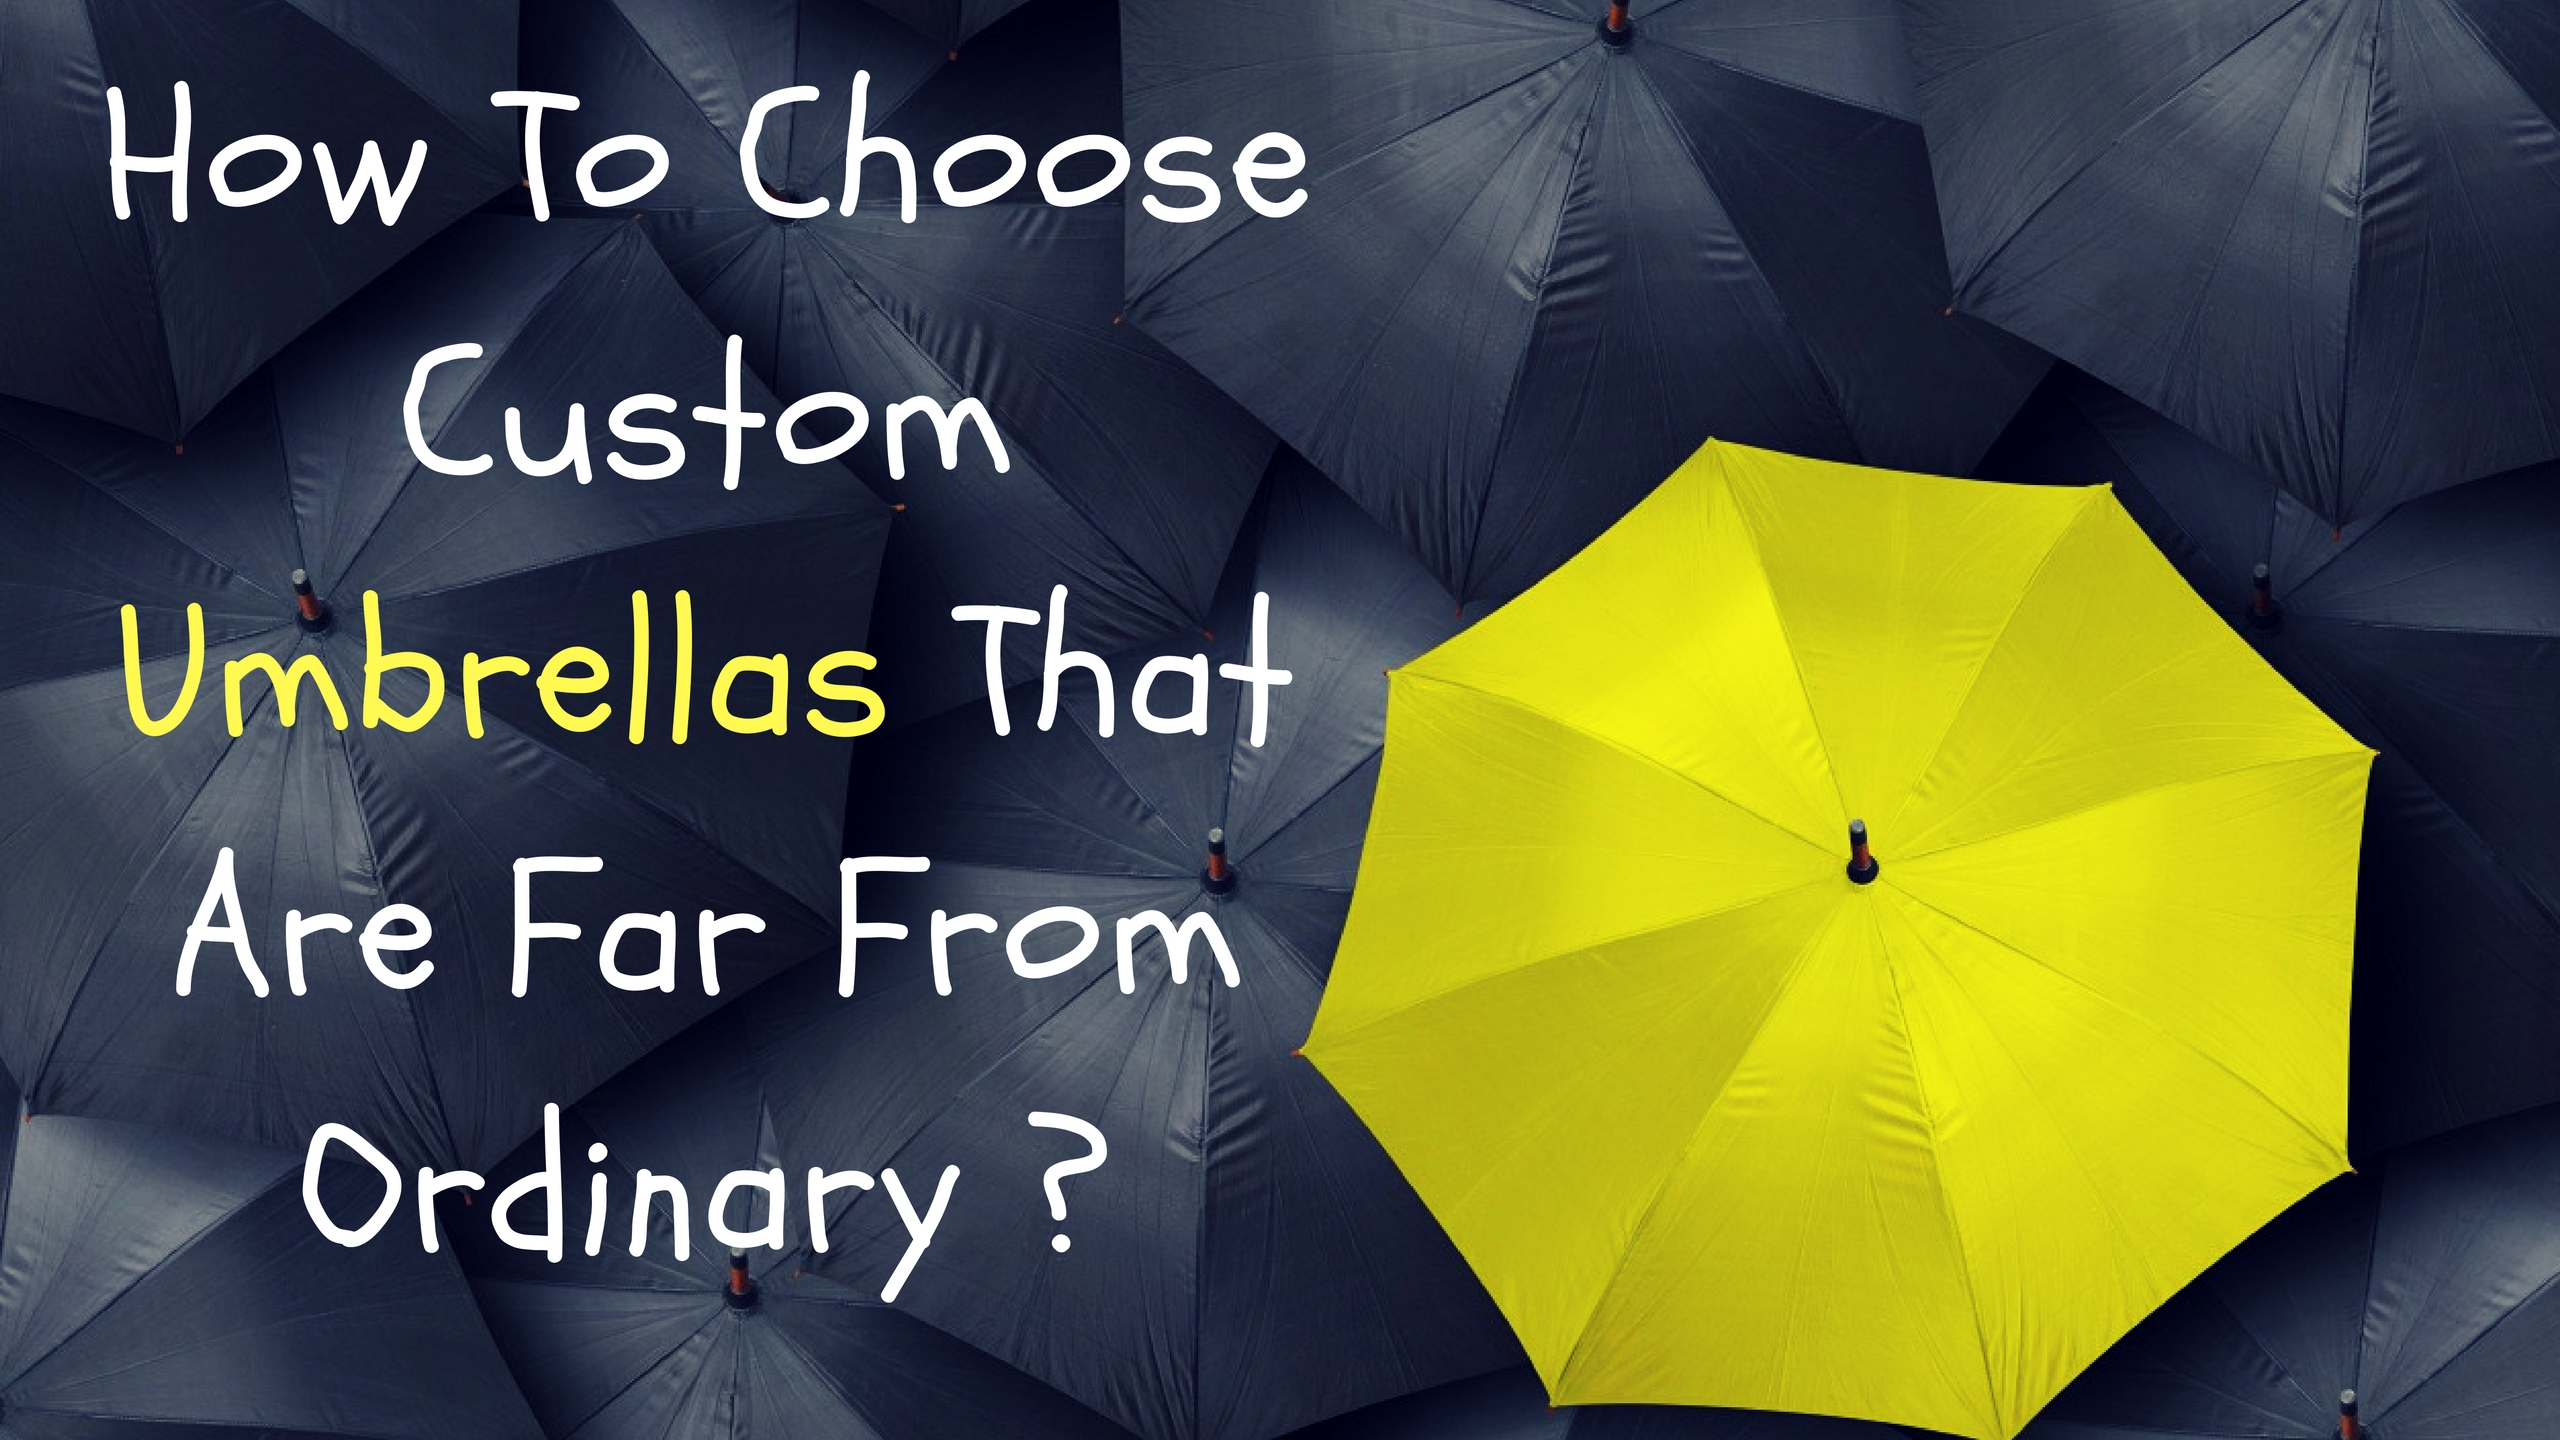 How To Choose Custom Umbrellas That Are Far From Ordinary ...